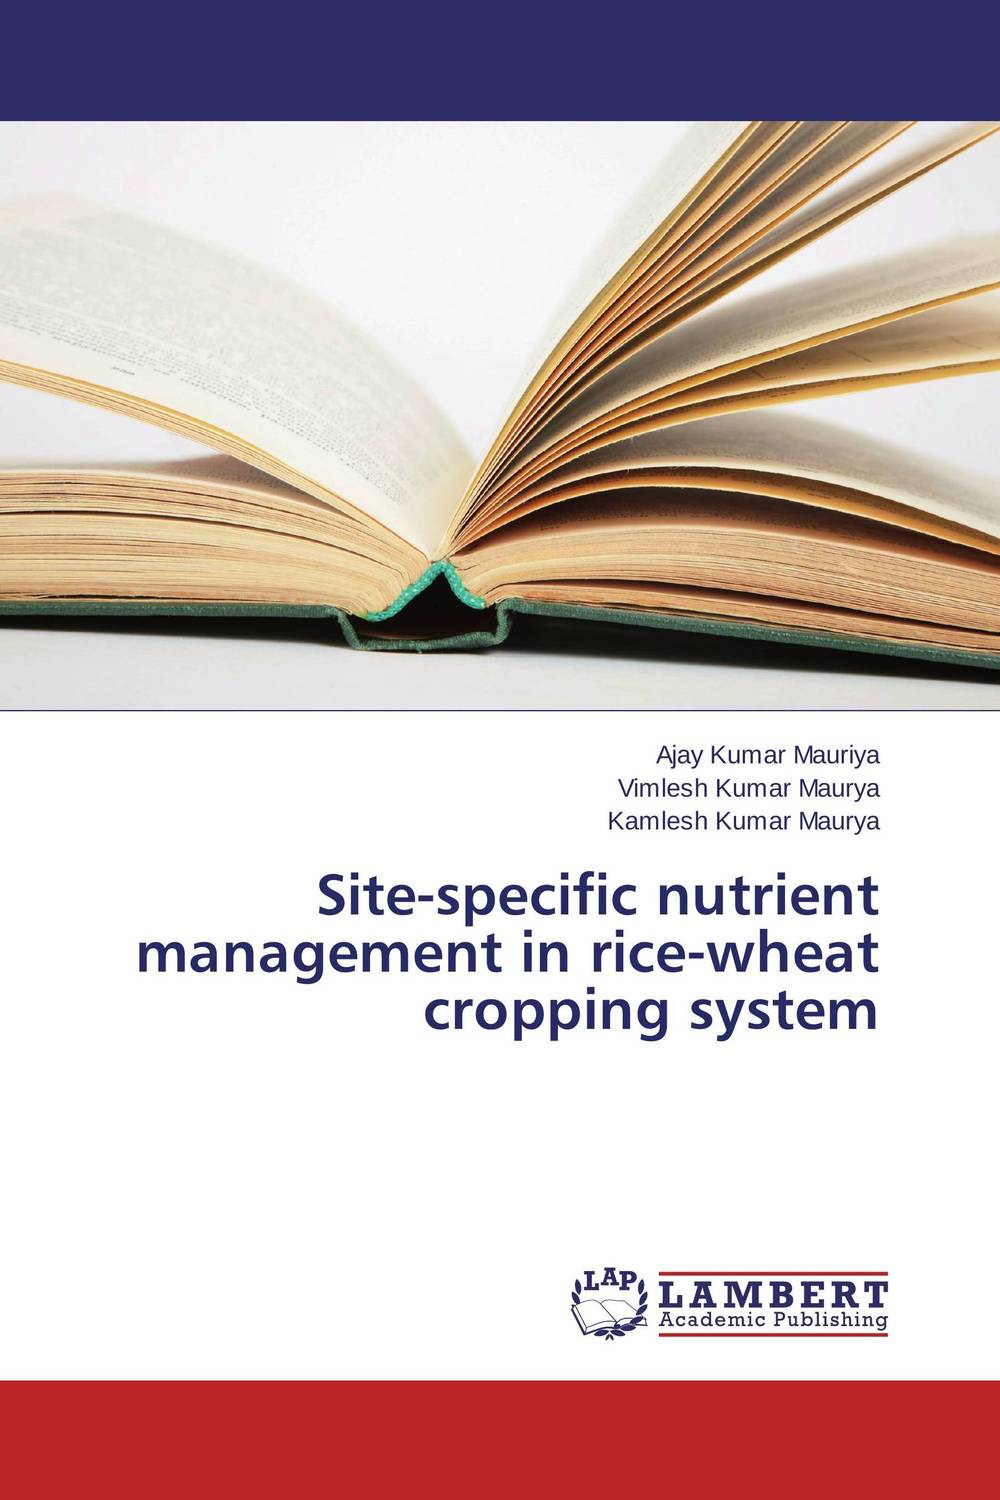 Site-specific nutrient management in rice-wheat cropping system k r k naidu a v ramana and r veeraraghavaiah common vetch management in rice fallow blackgram